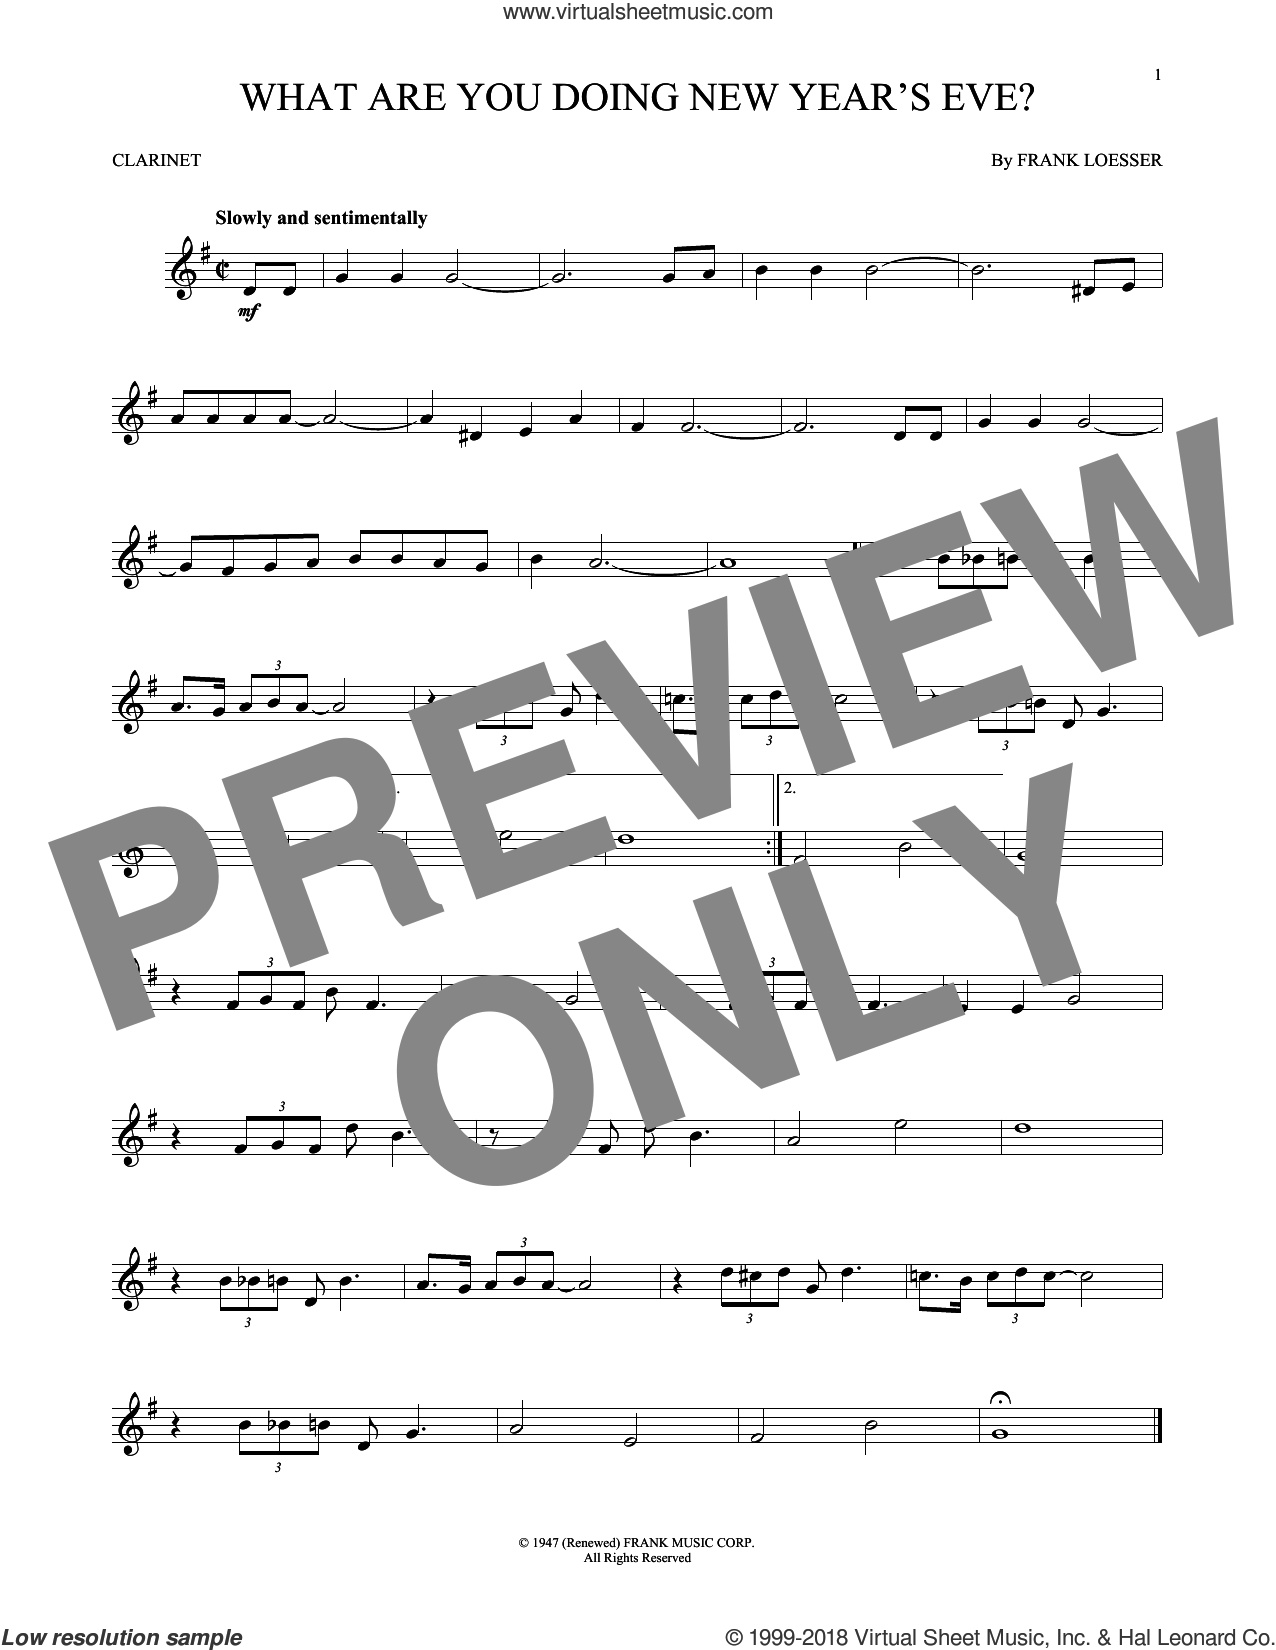 What Are You Doing New Year's Eve? sheet music for clarinet solo by Frank Loesser, intermediate skill level